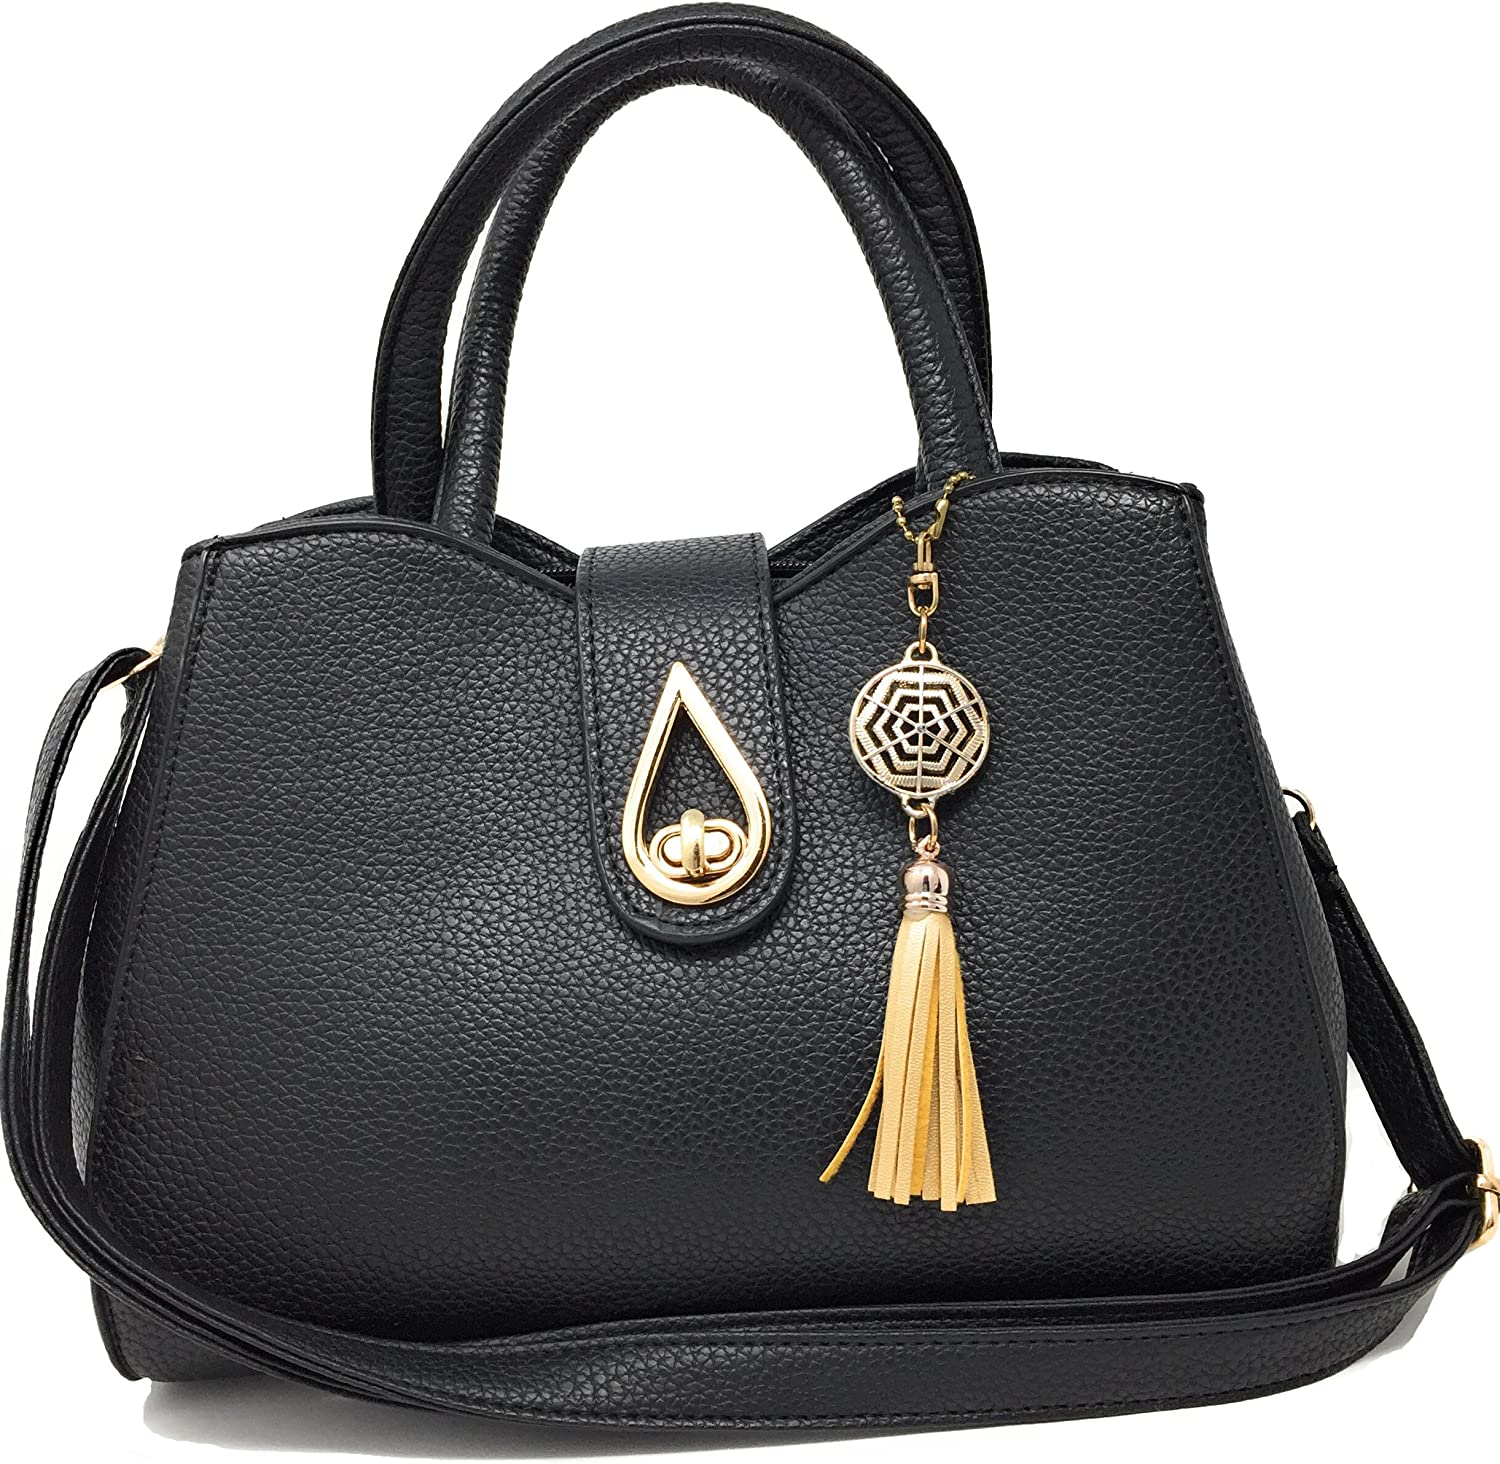 Blazing Autumn Fashion Handbag Shoulder Bag Black Faux Leather gold color Accents